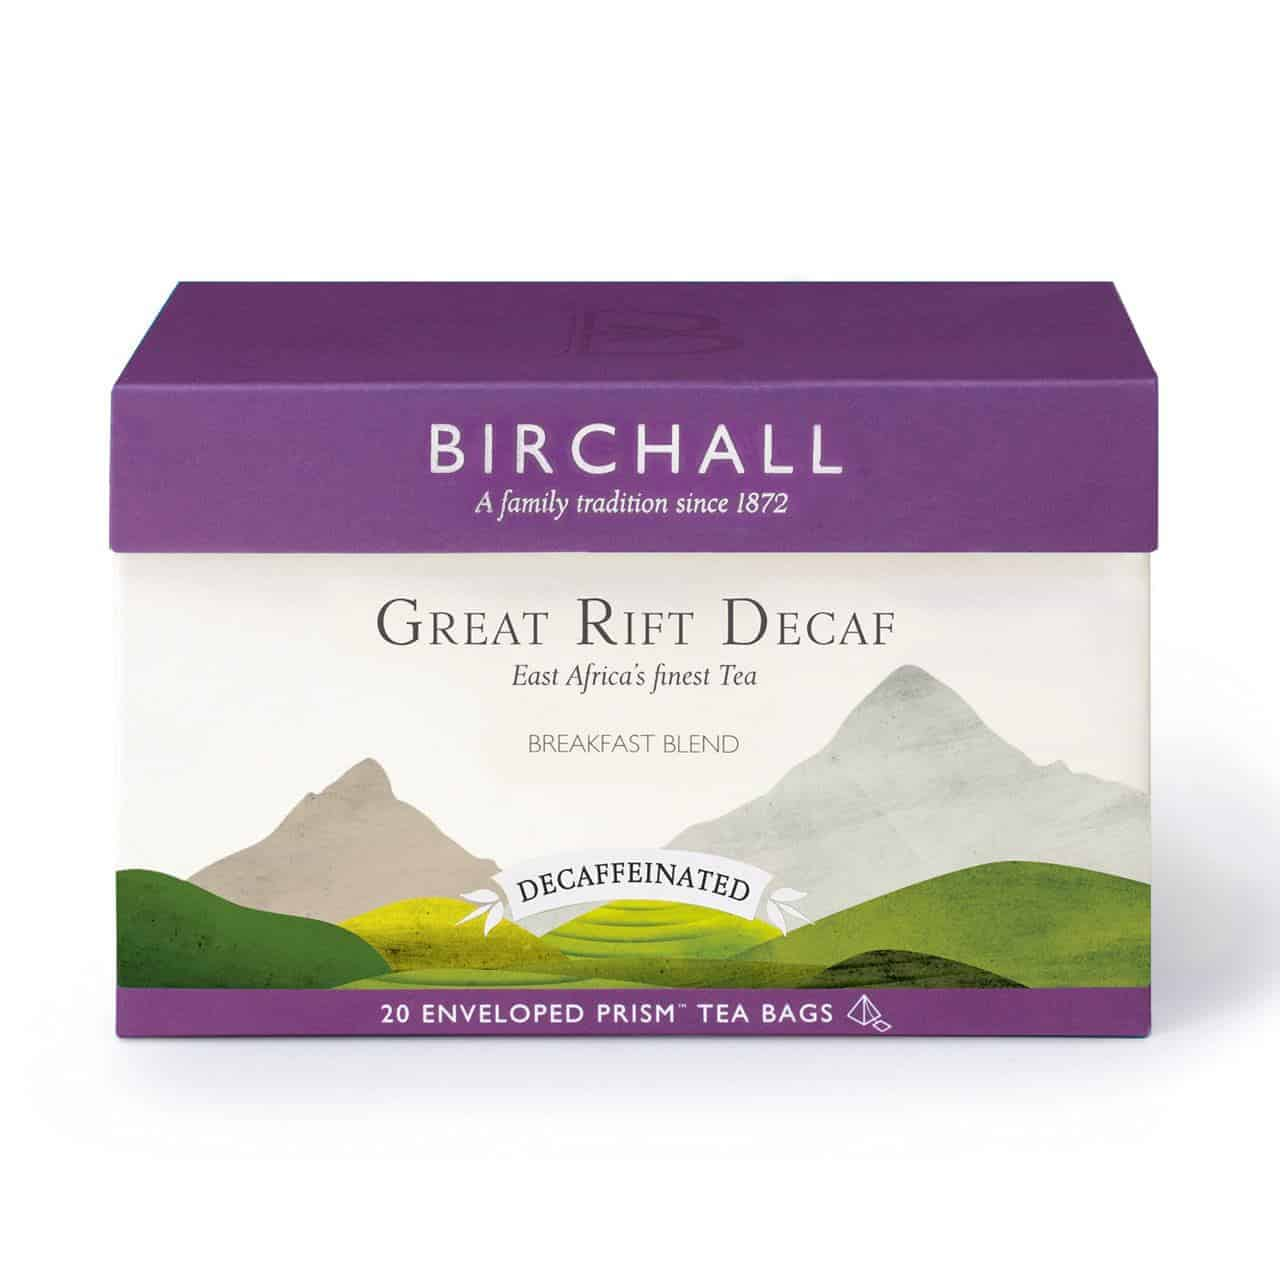 Birchall Great Rift Decaf - 20 Enveloped Prism Tea Bags